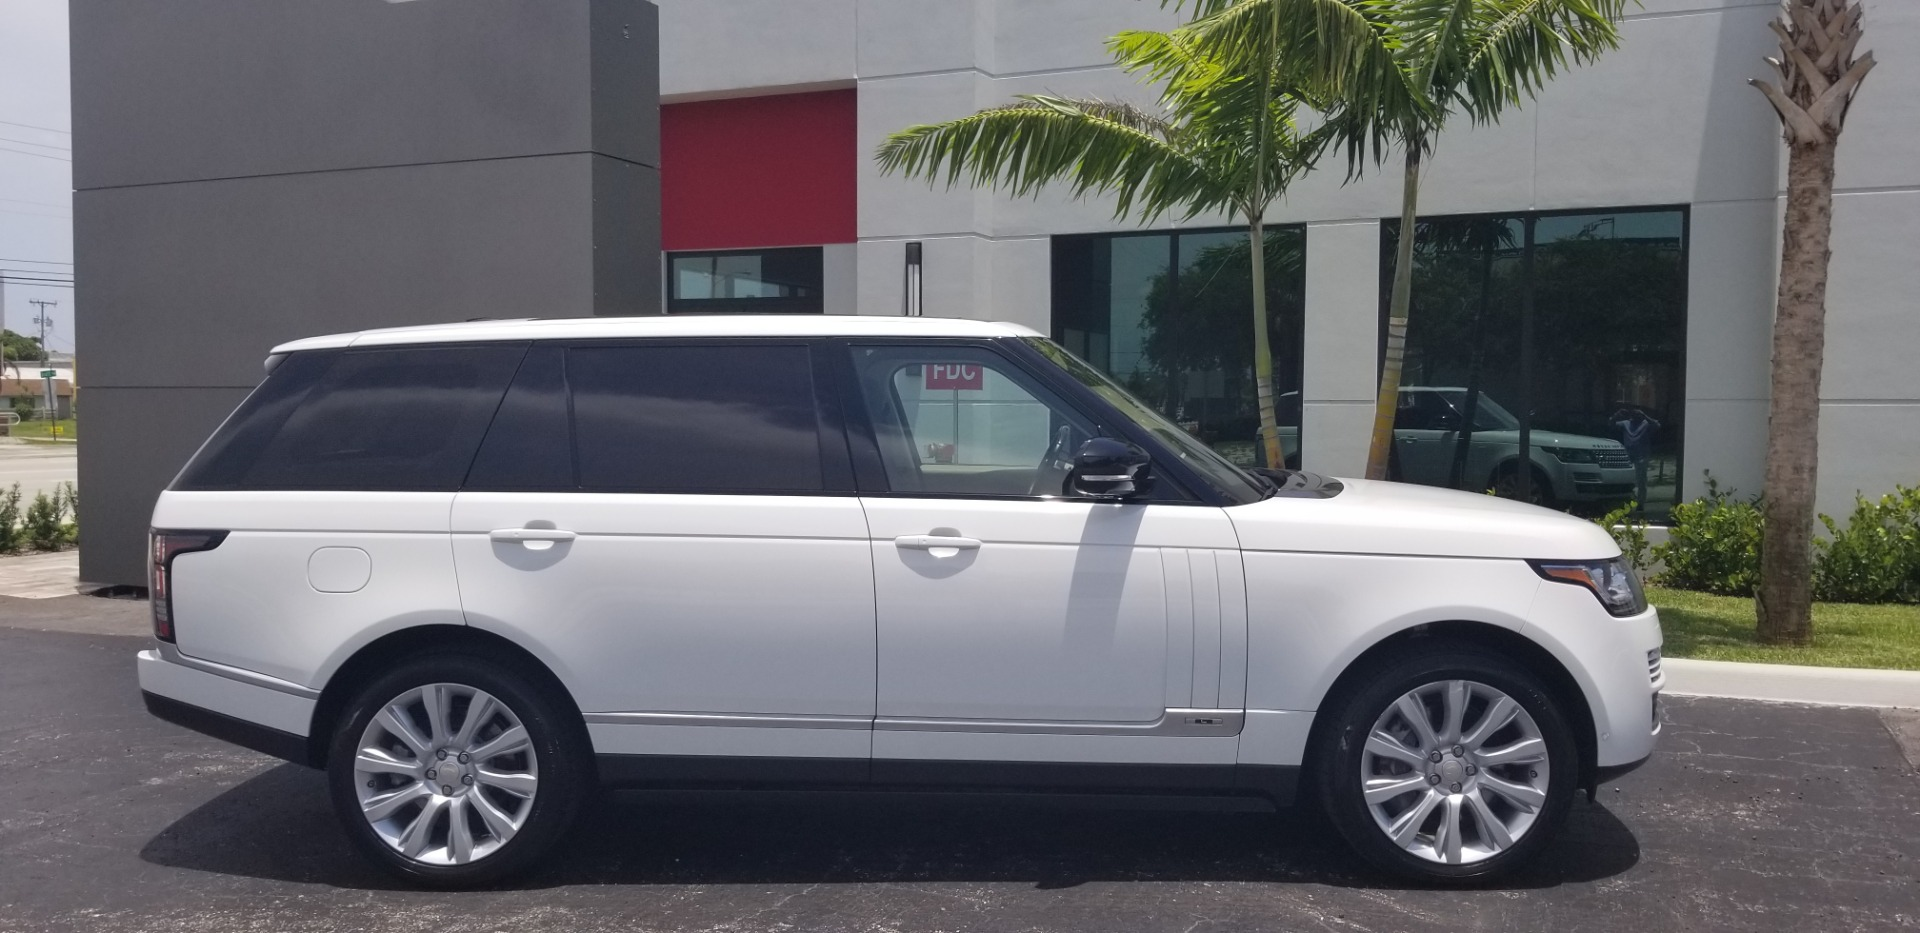 Used-2014-Land-Rover-Range-Rover-Supercharged-Long-Wheelbase